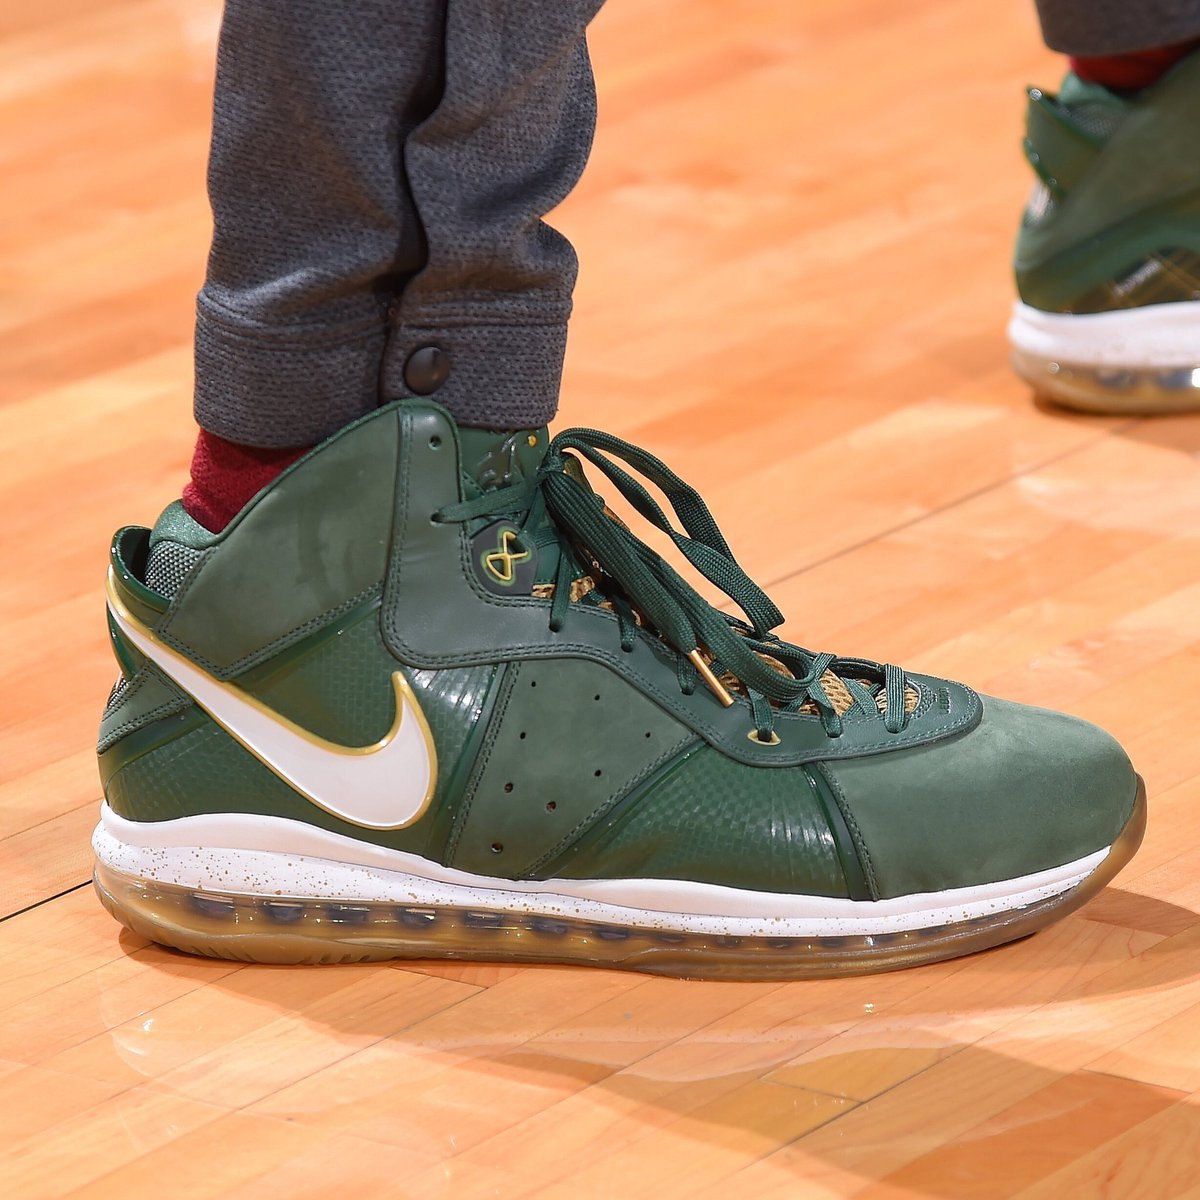 """9cbfc9ee5454 PJ Tucker went with the Nike LeBron 8 """"SVSM"""" and Kobe 8 """"Year of the Horse""""  tonight.pic.twitter.com VNte0iVtPN"""